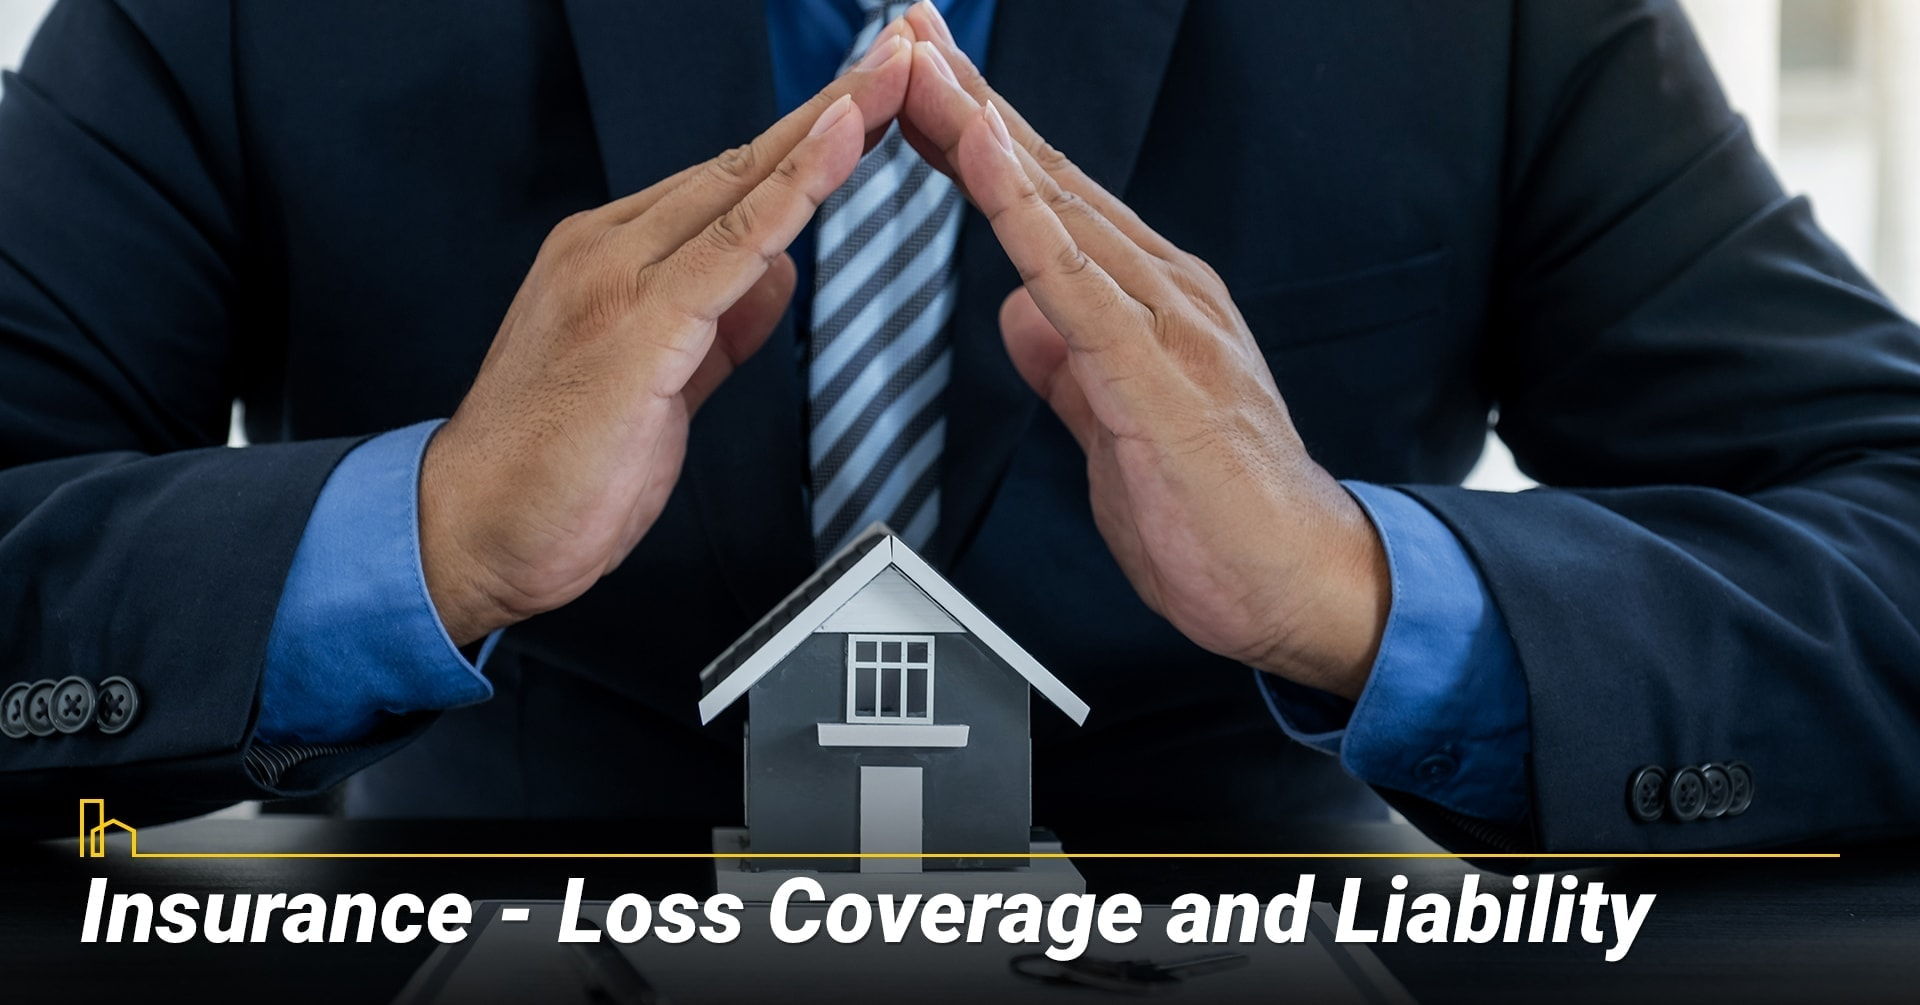 Insurance—Loss Coverage and Liability, protect your home with insurance